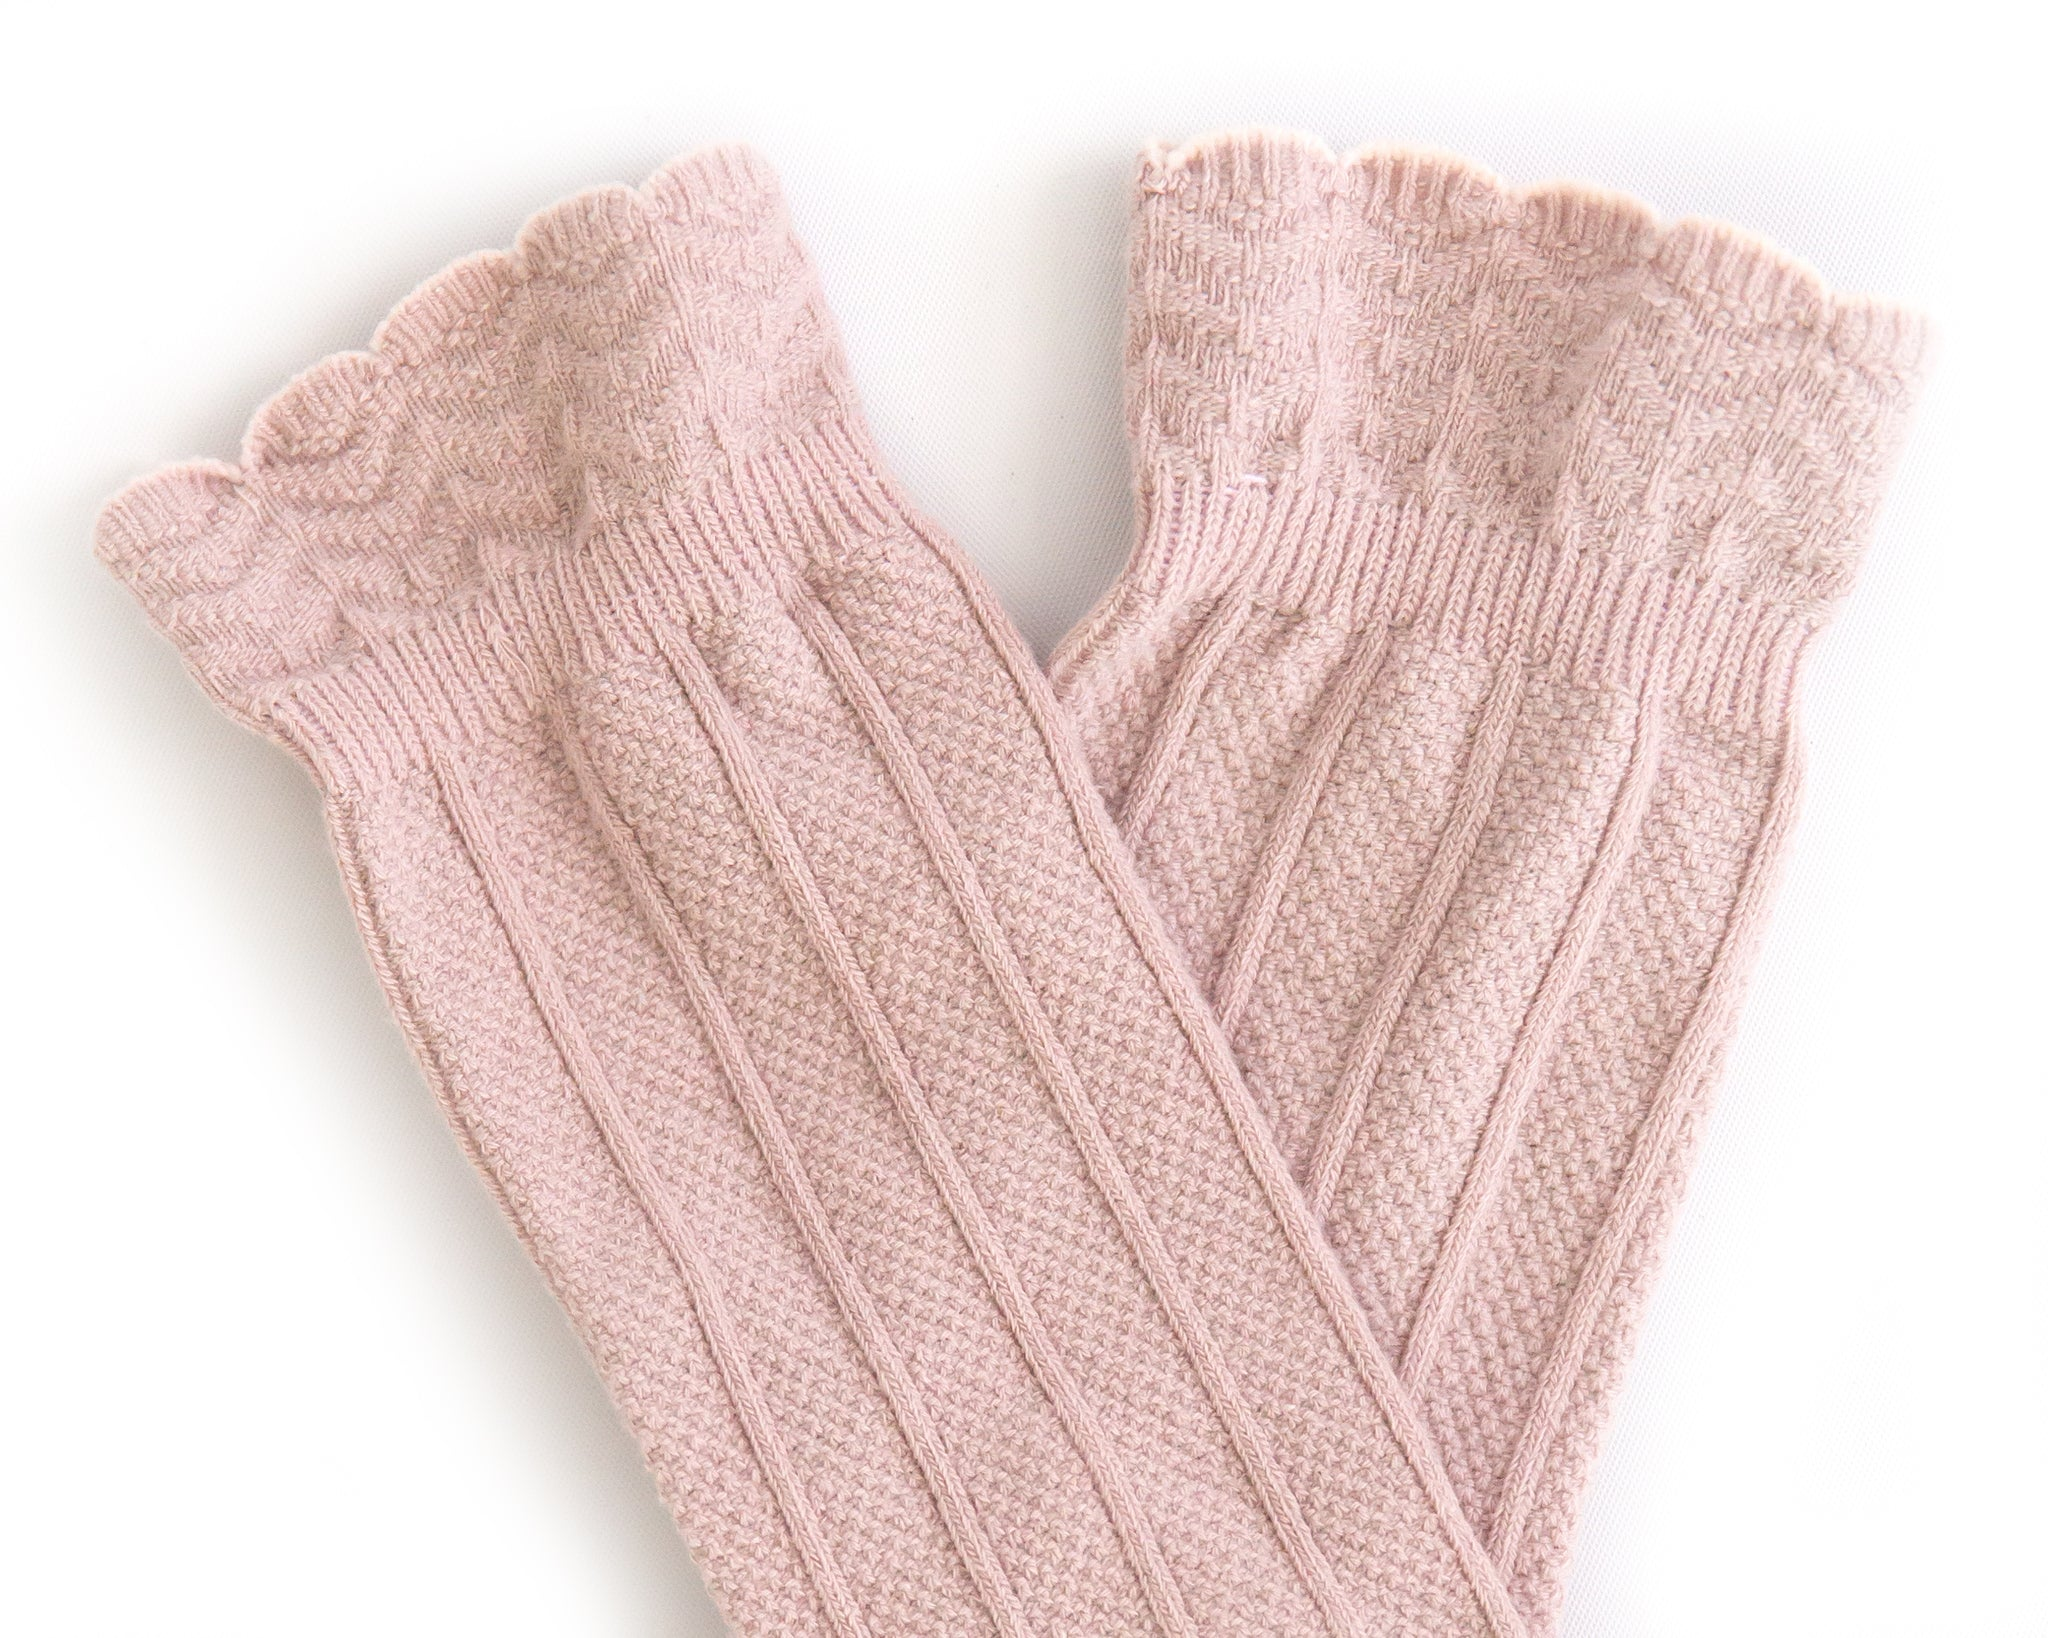 Knee High Socks in Blush - Reverie Threads